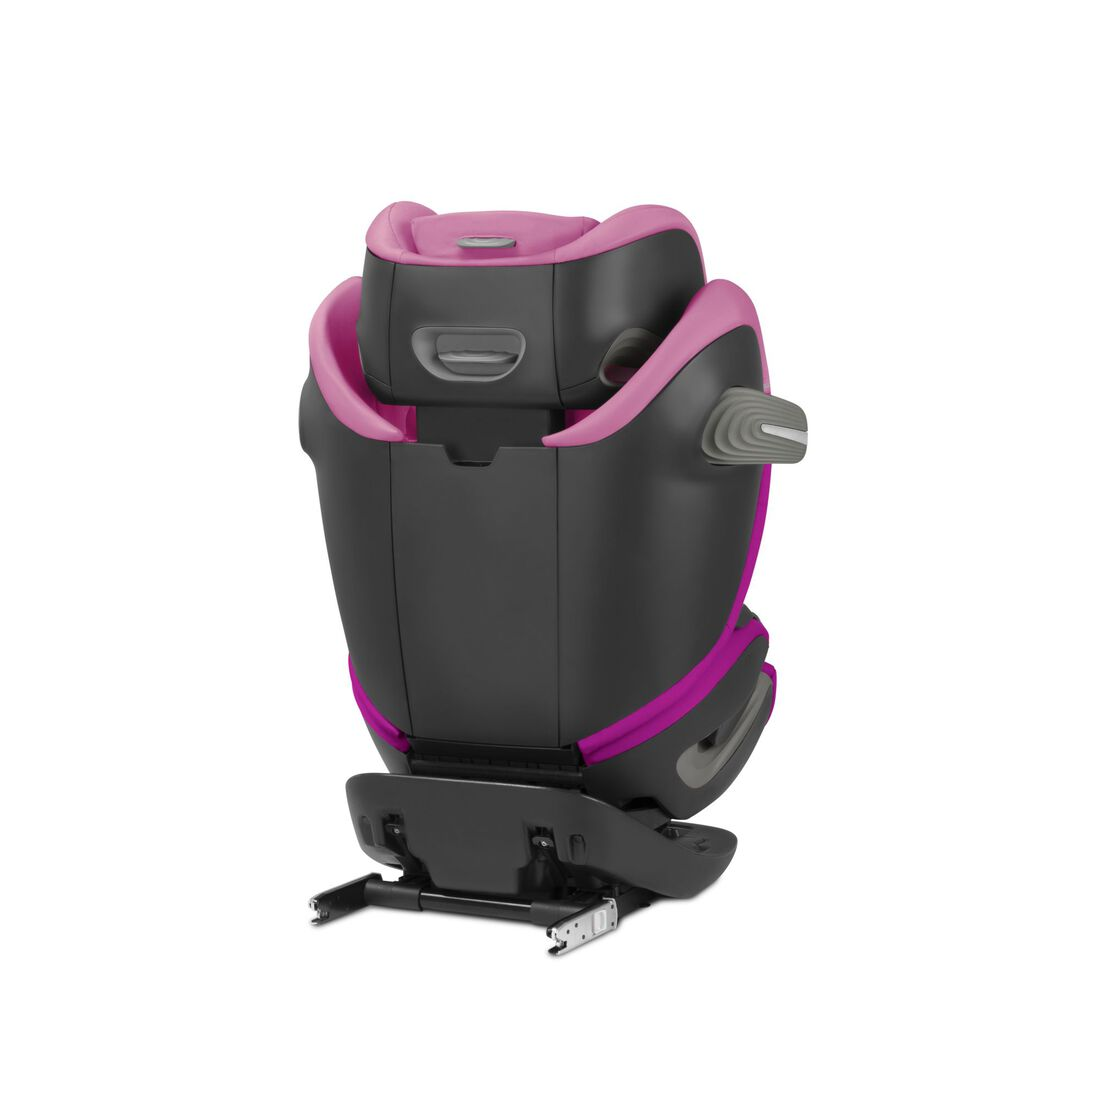 CYBEX Pallas S-fix - Magnolia Pink in Magnolia Pink large image number 4